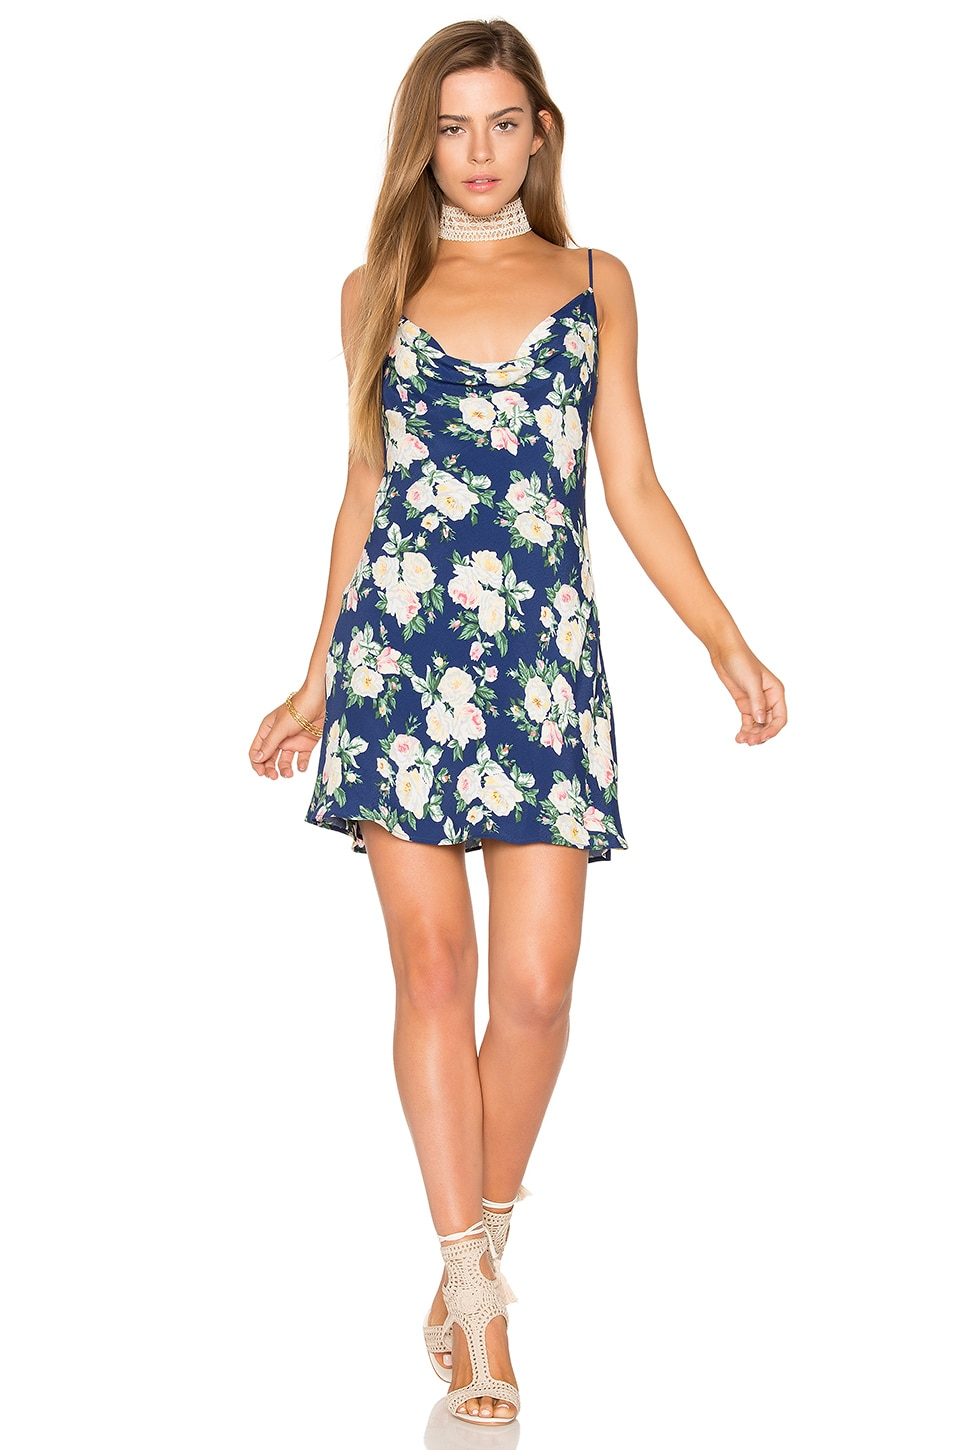 Privacy Please x REVOLVE Ozark Dress in Navy